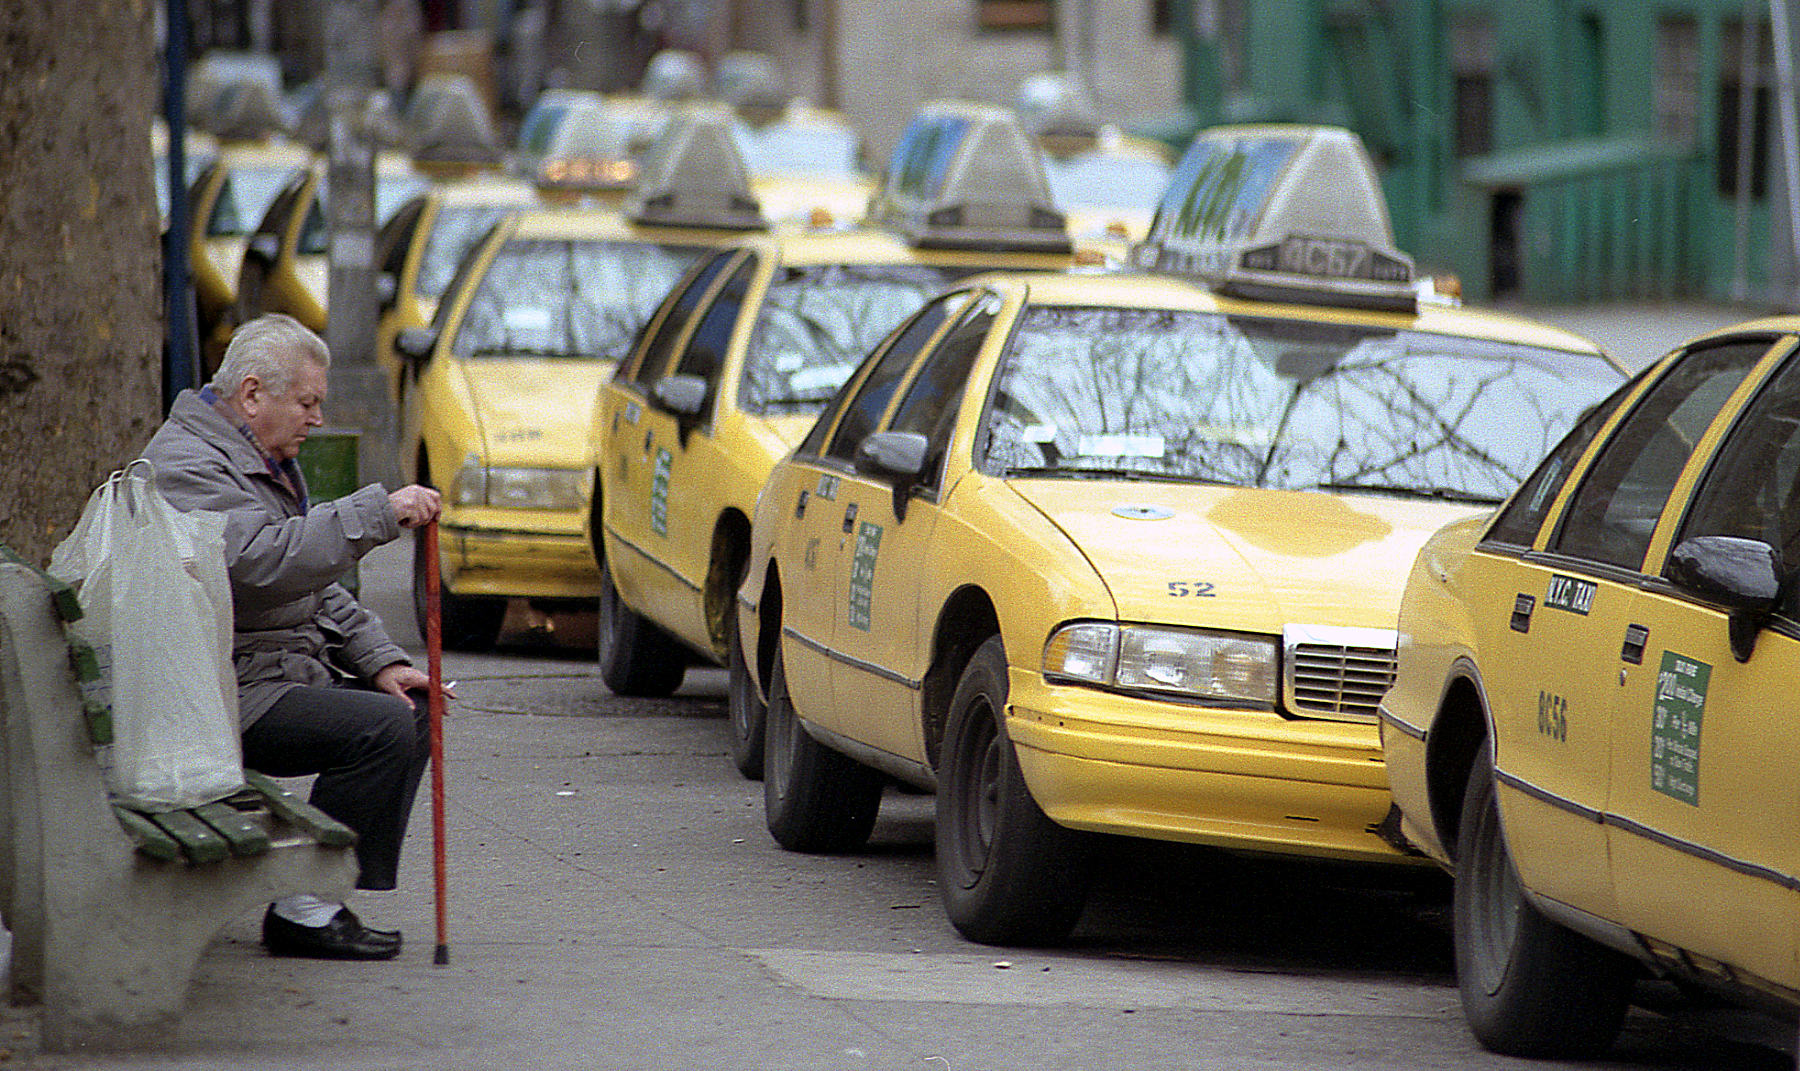 New York man and cabs